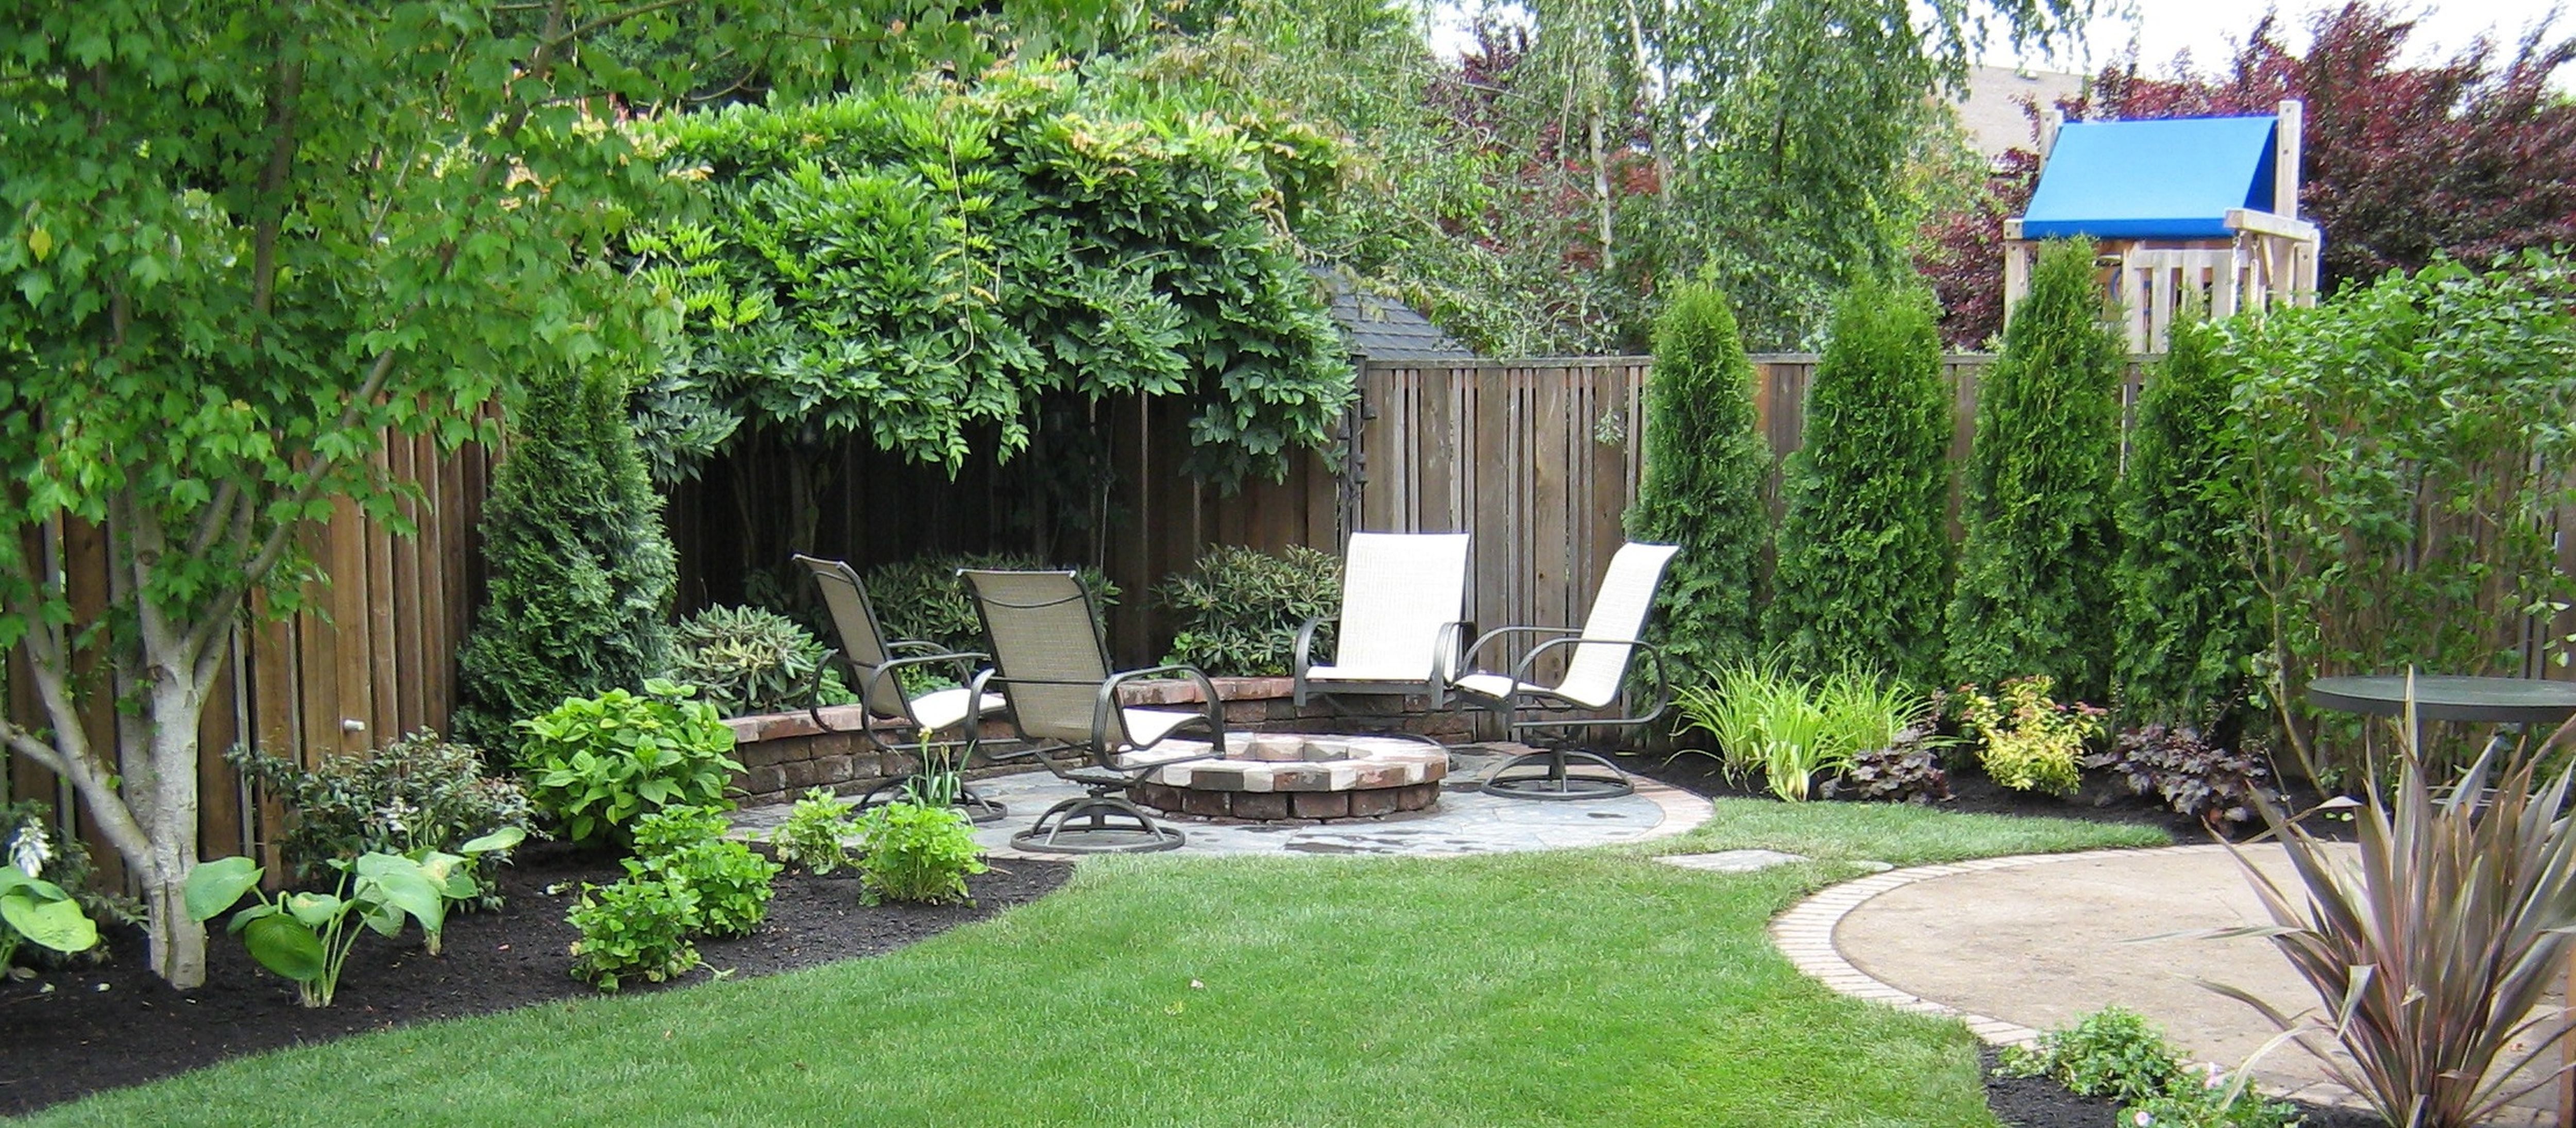 Simple landscaping ideas for a small space simple for Yard landscaping ideas